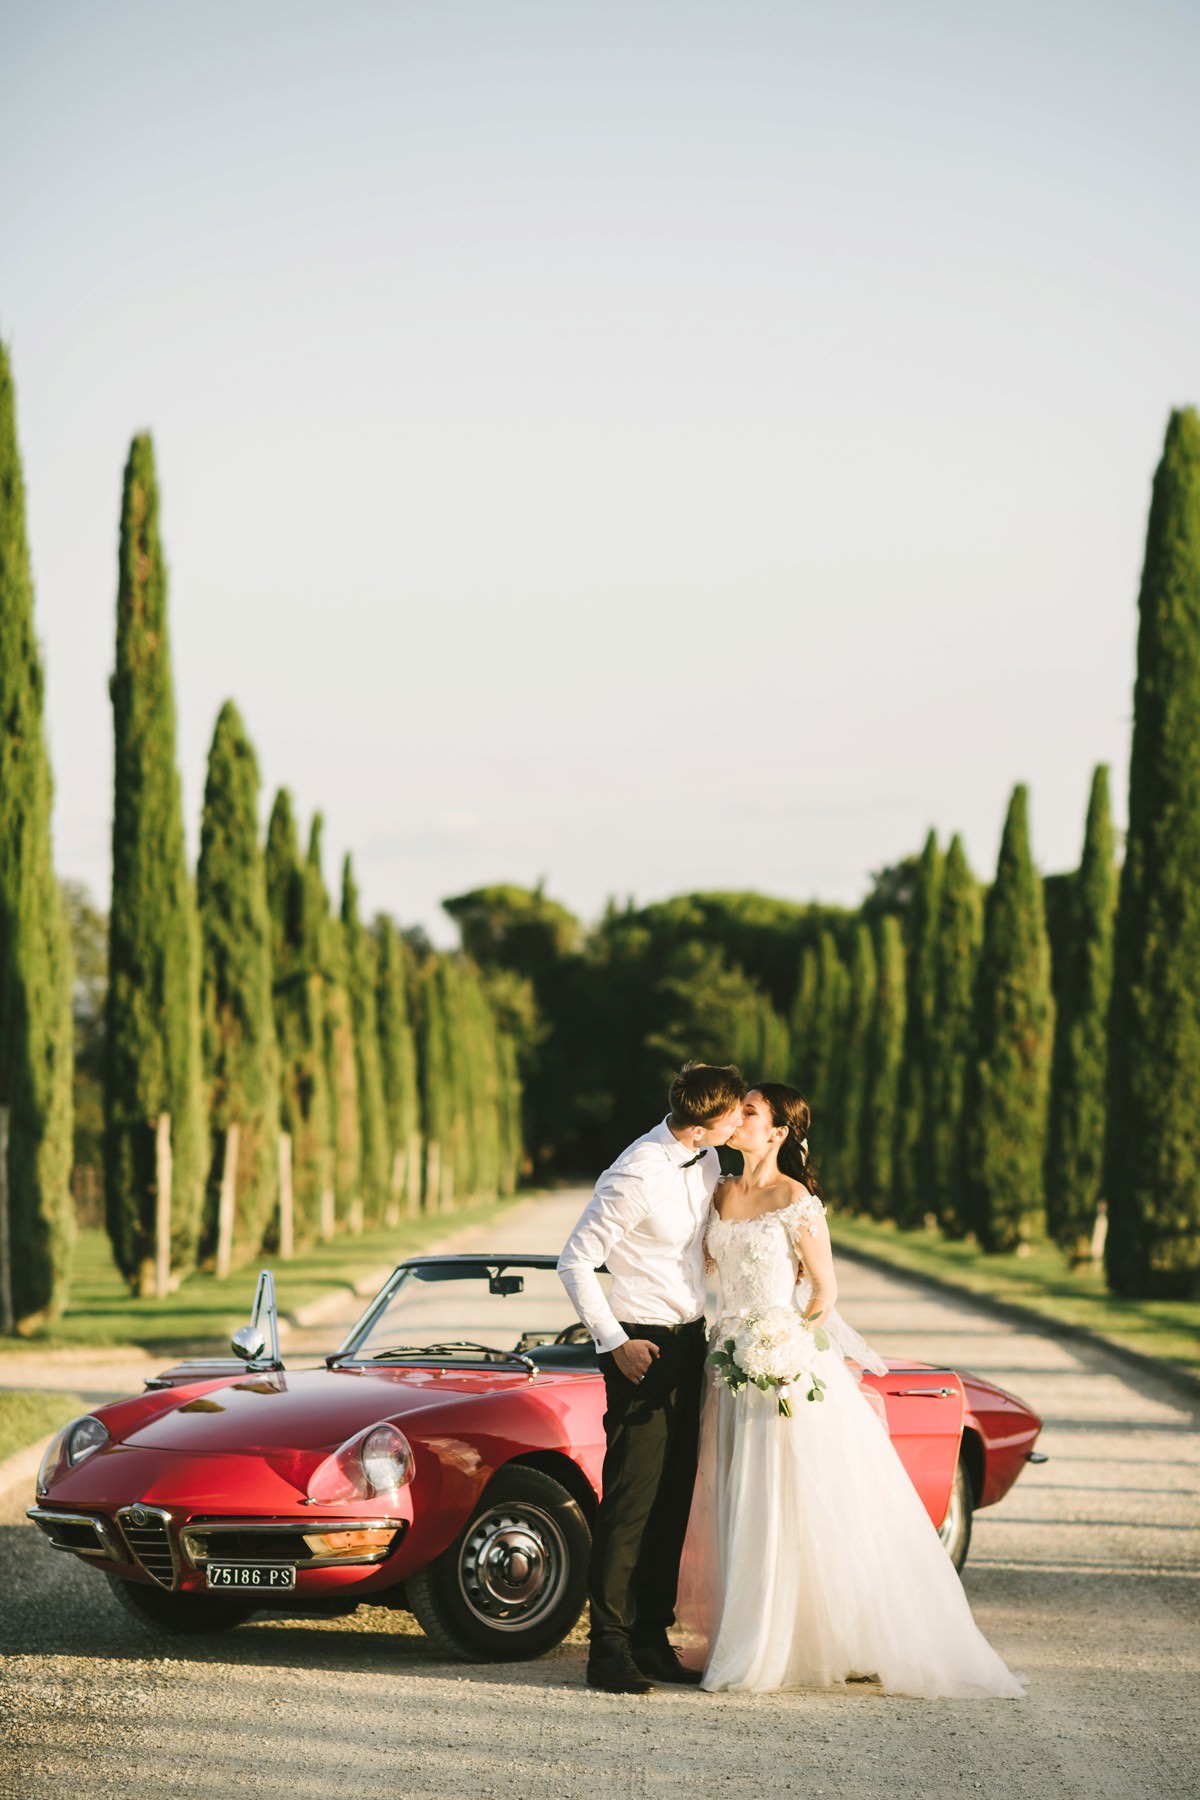 Bride and groom special kiss on Alfa Romeo spider vintage car in cypress road near Montelucci Country Resort